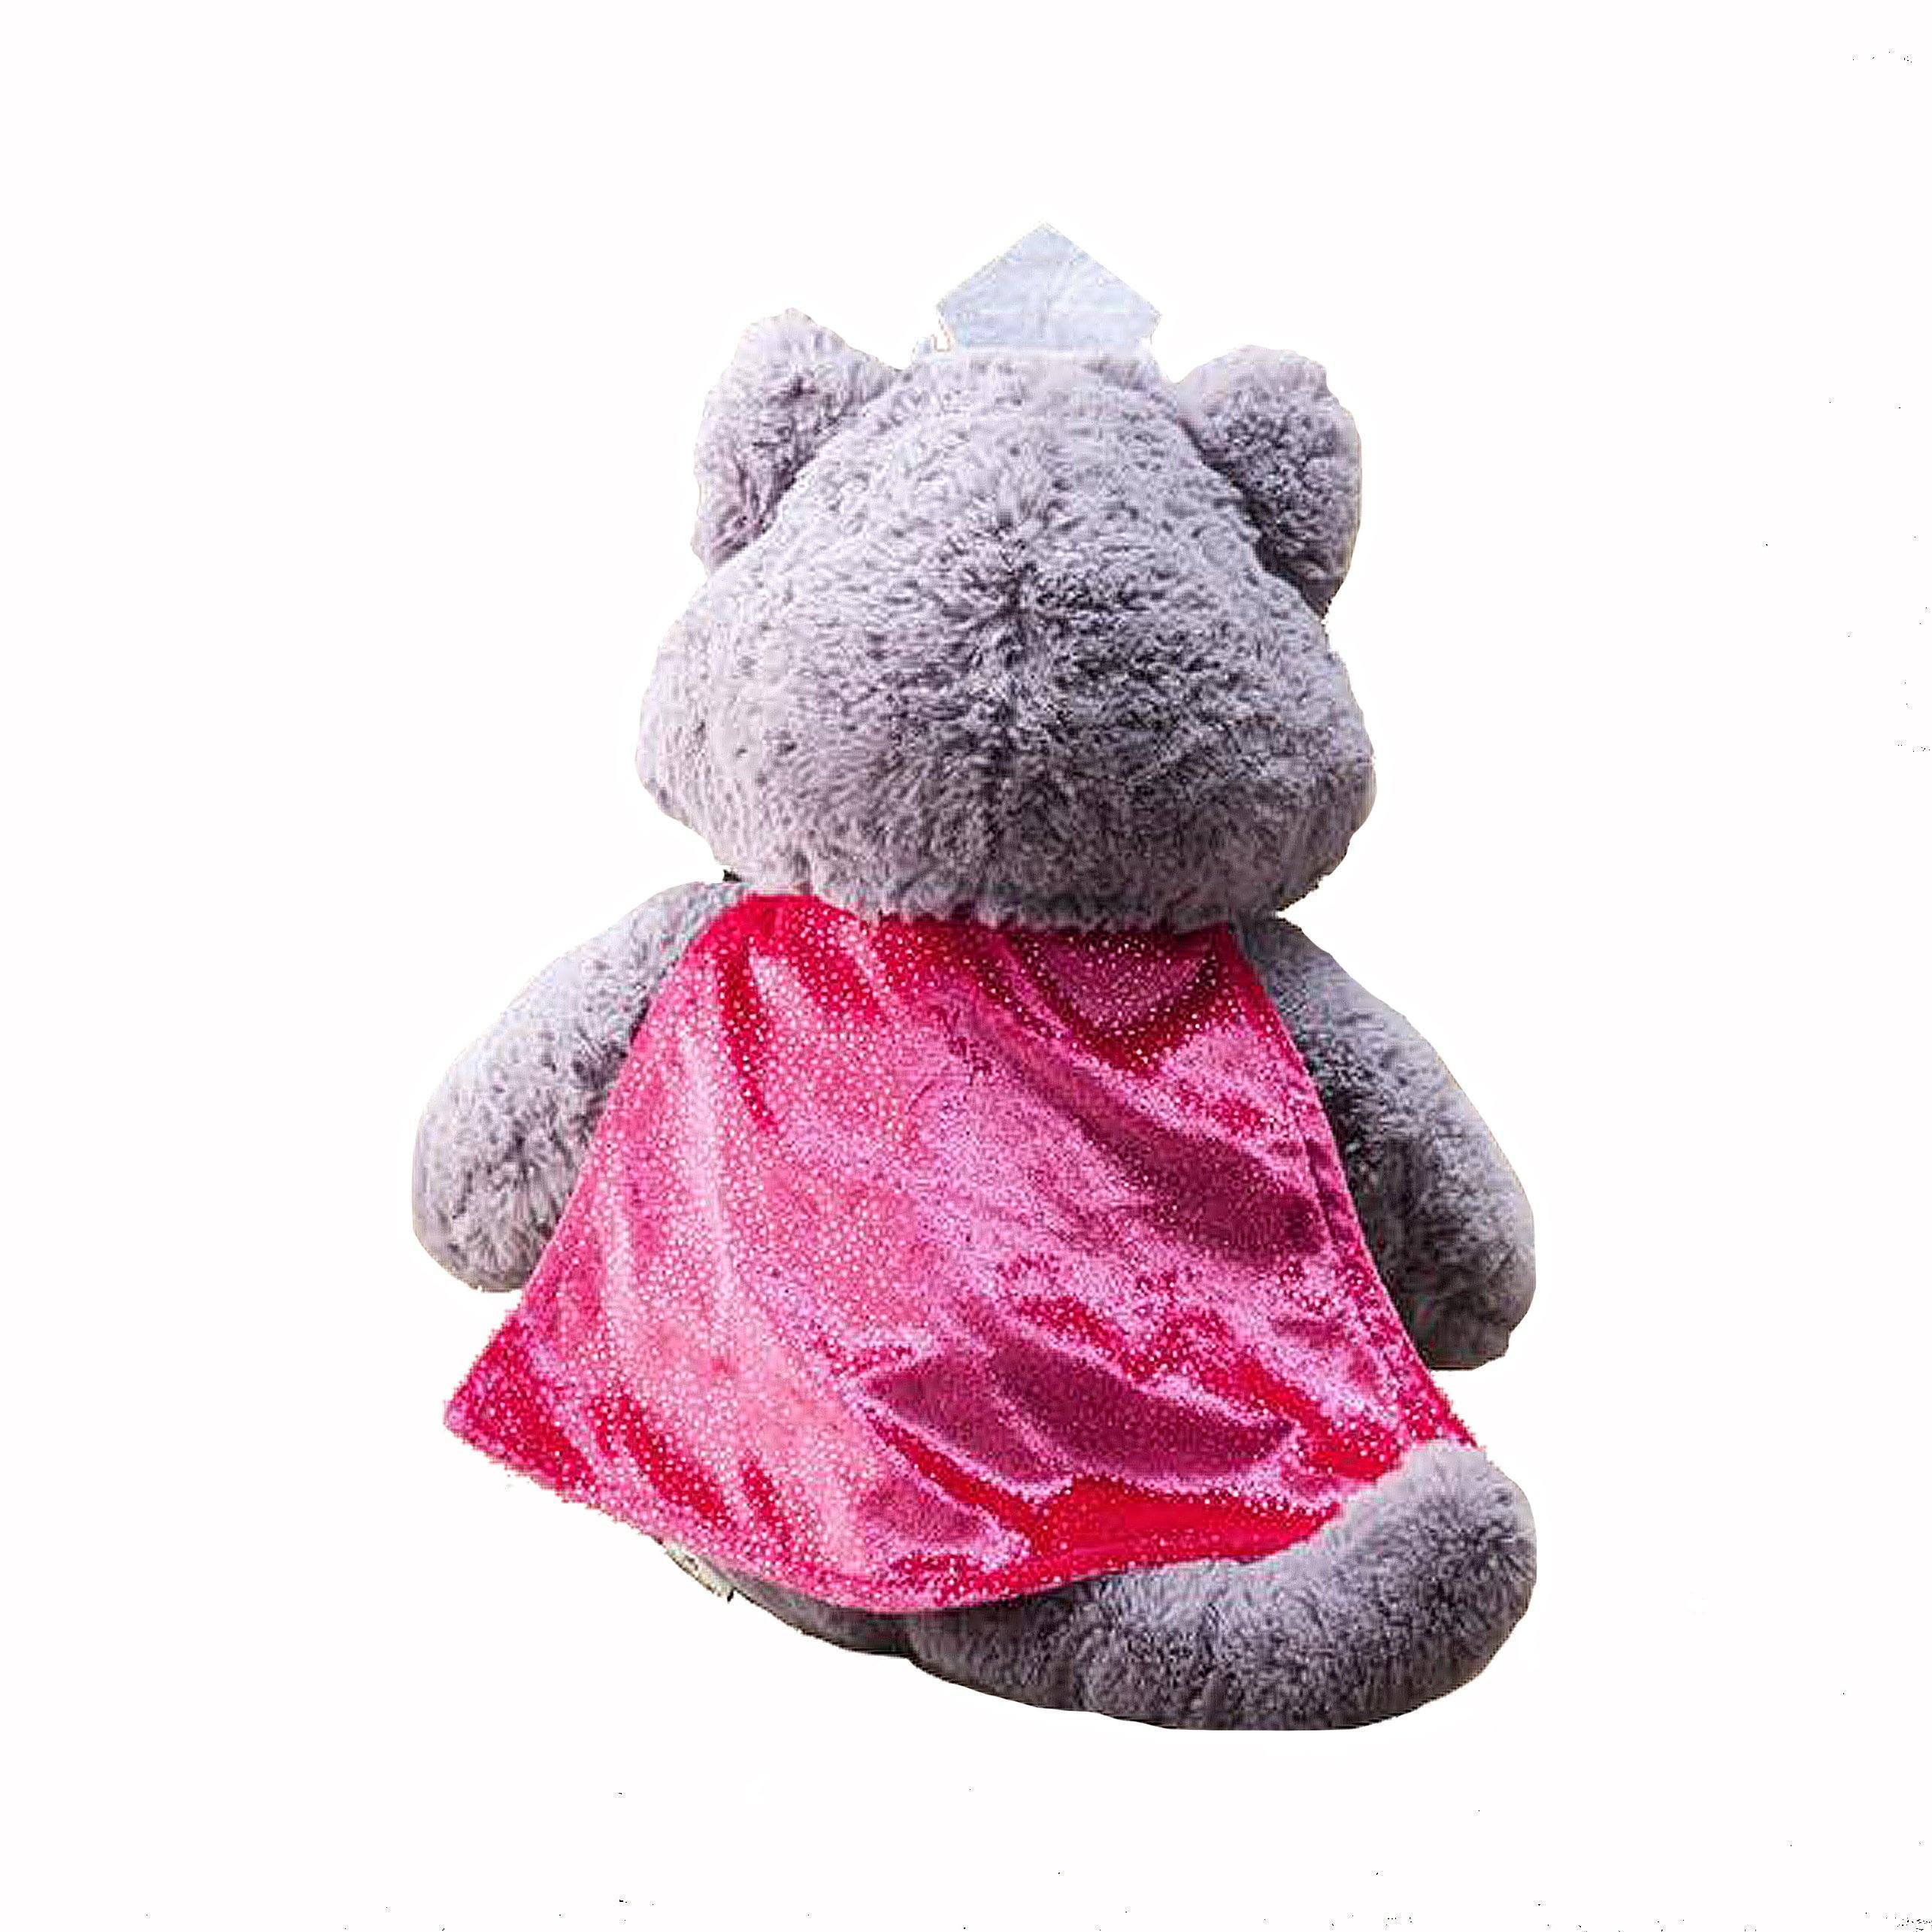 Flipemz Kitty to Princess Kitty Plush Toy